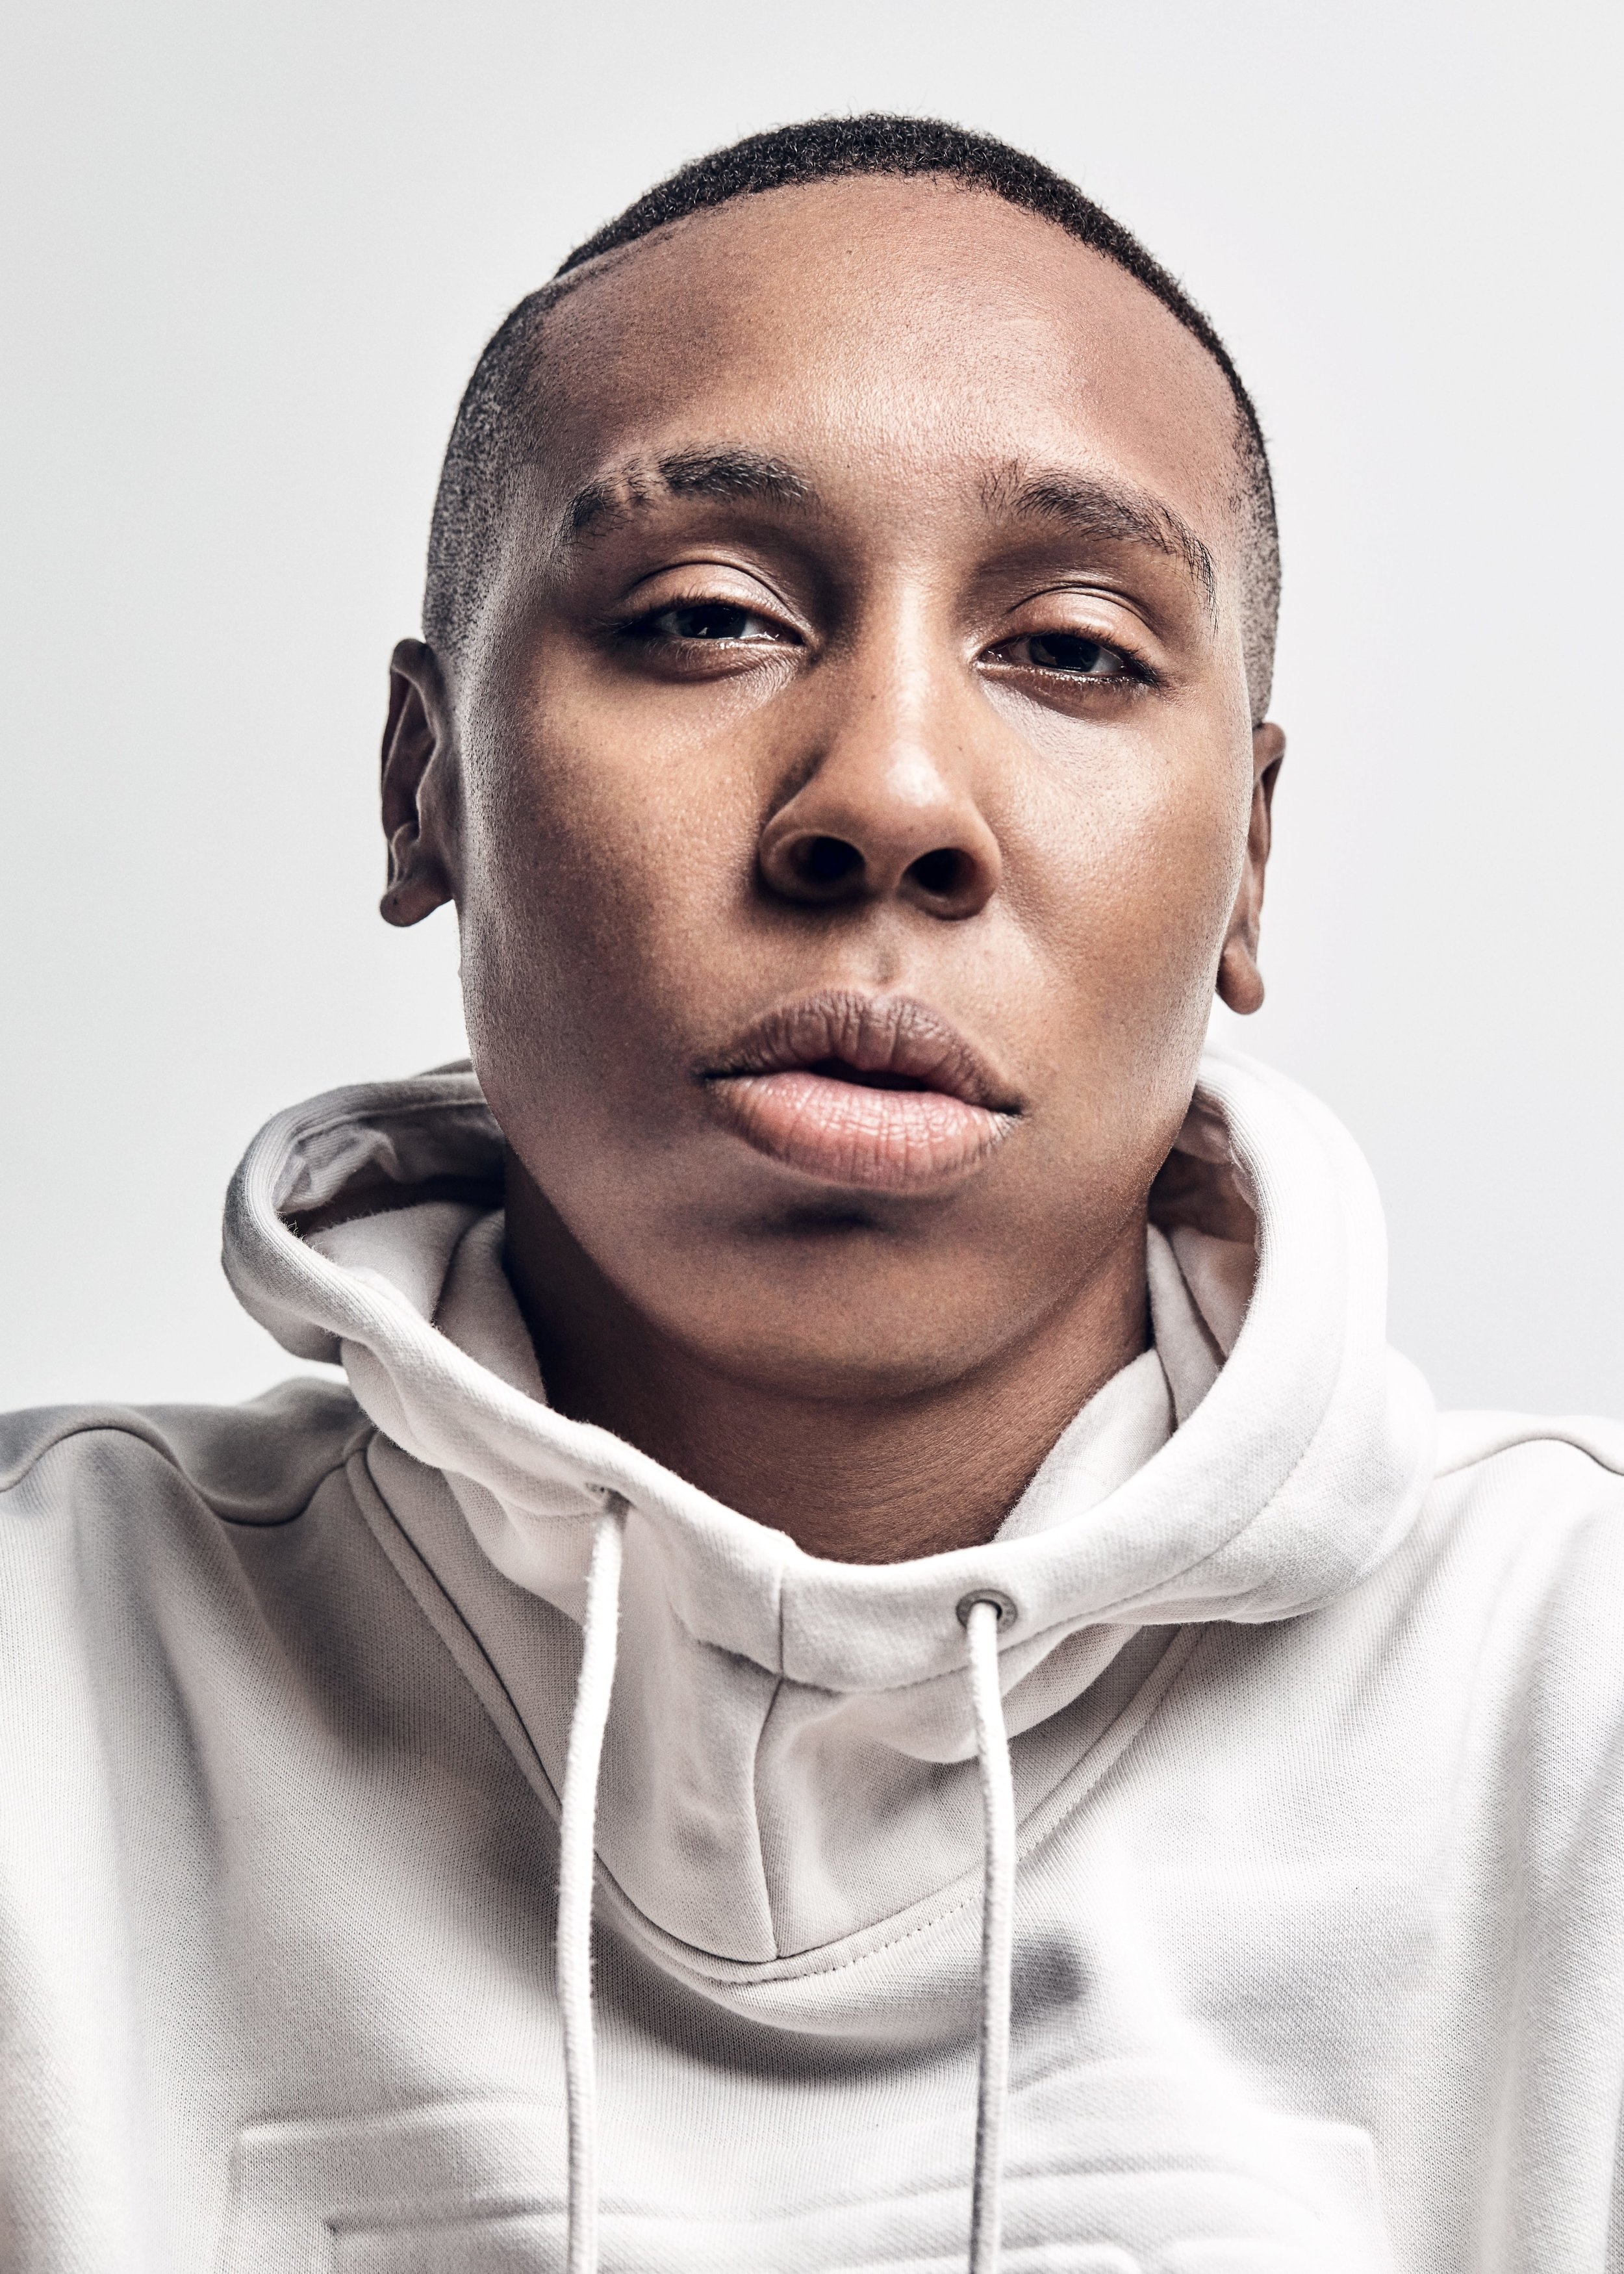 180821_05_AS_LENA_WAITHE_S002_330_V2A_RGB-min.jpg